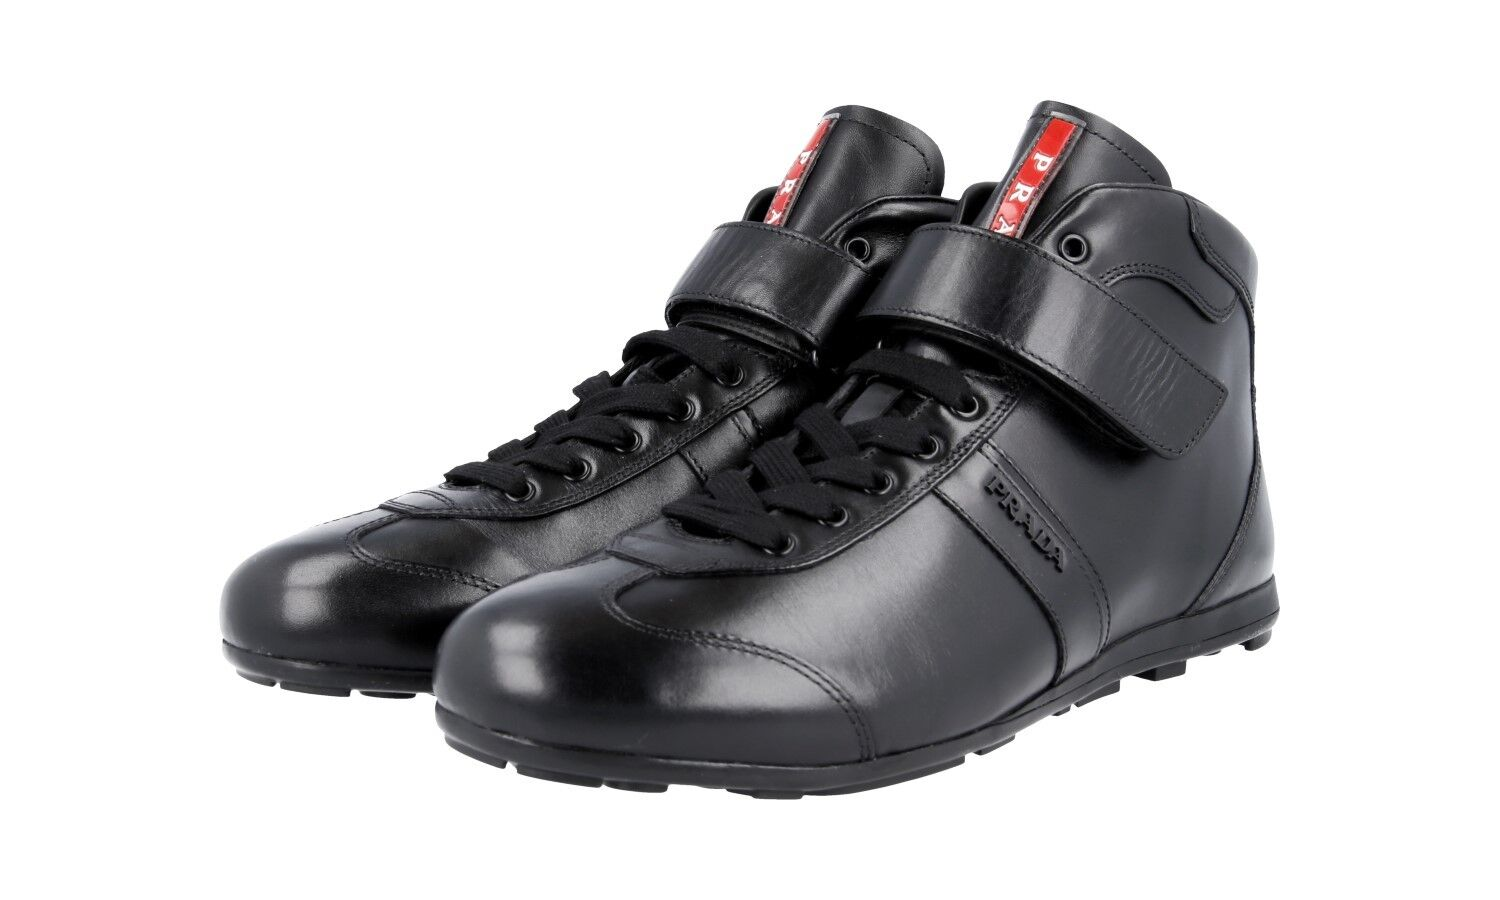 Originale PRADA L SO HIGH TOP SNEAKERS SCARPE 4T2788 NERO NUOVE 9,5 43,5 44